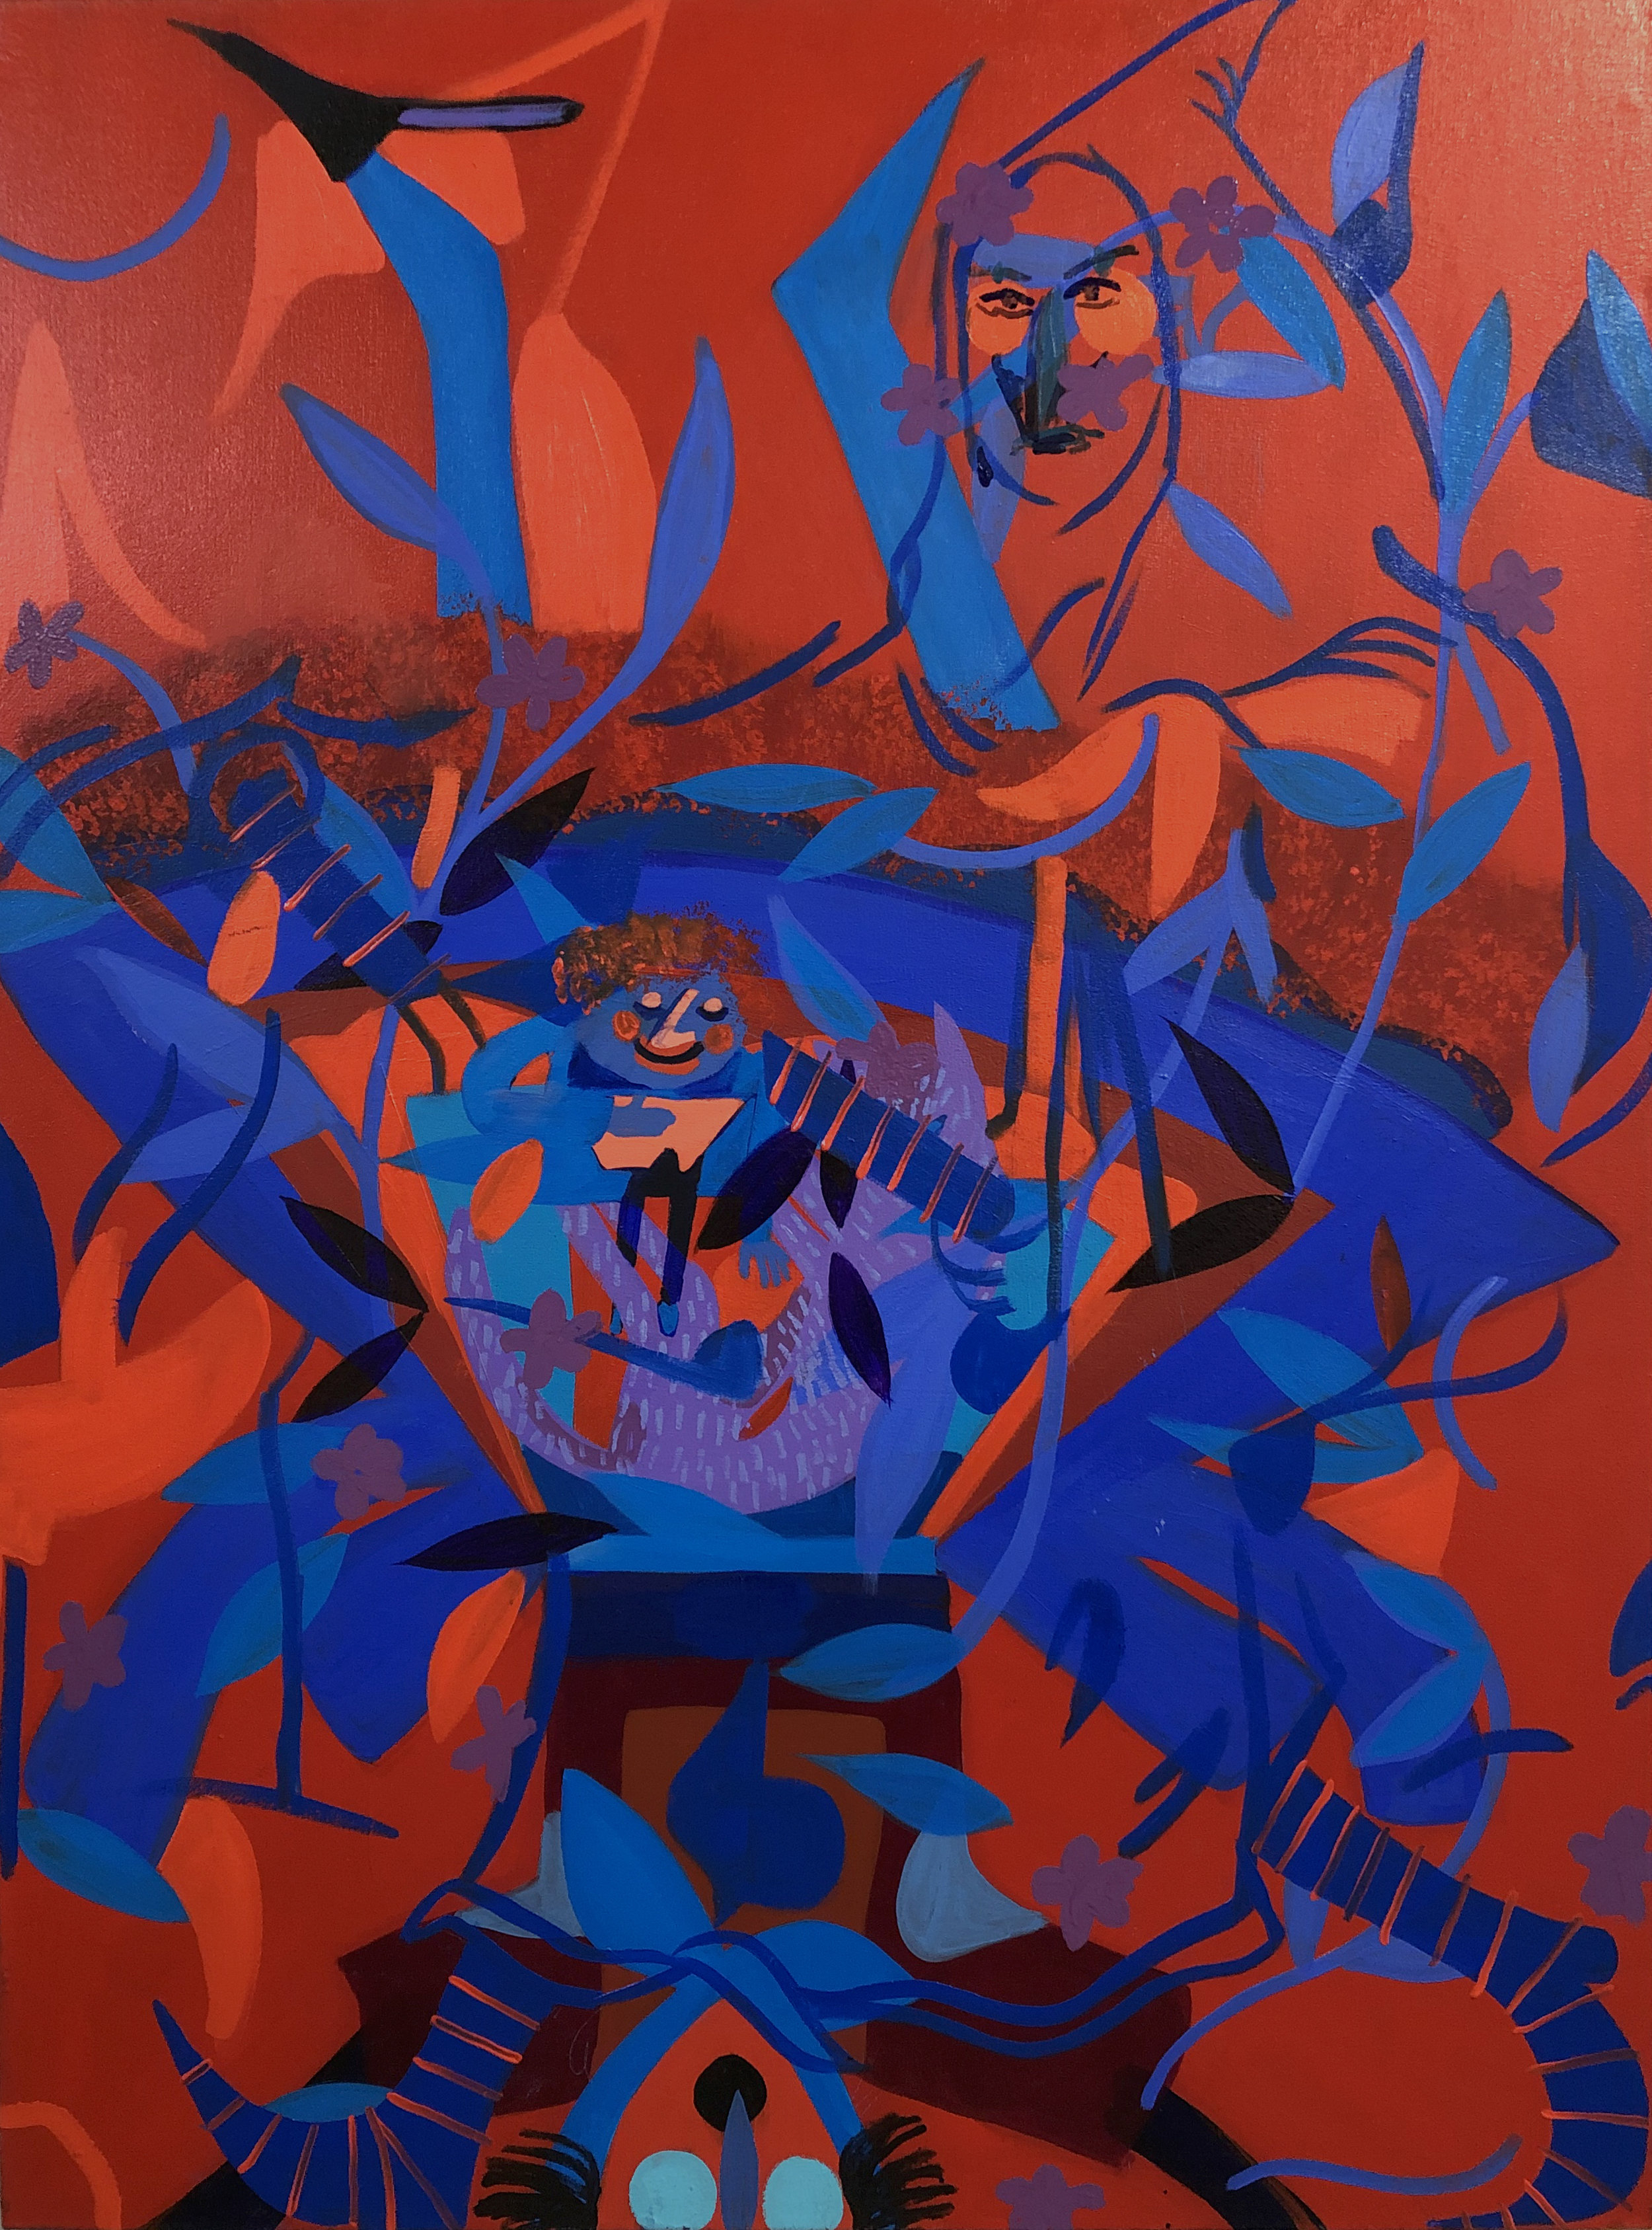 06_Joshua Petker, Title 4, 48x36%22, acrylic and oil on canvas, 2019.jpg